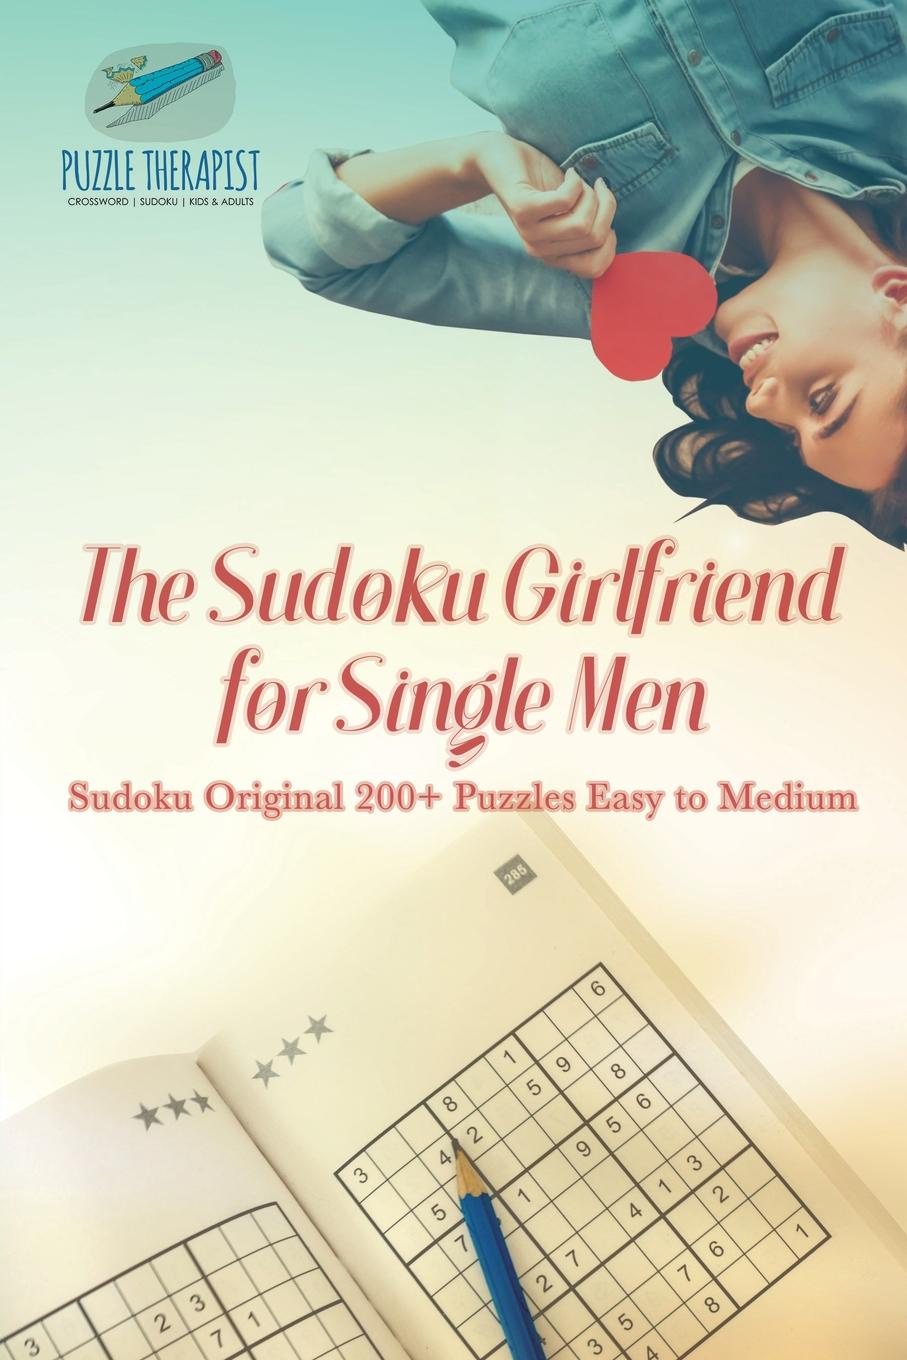 Puzzle Therapist The Sudoku Girlfriend for Single Men . Sudoku Original 200+ Puzzles Easy to Medium puzzle therapist one a day sudoku for the utterly obsessed large print puzzles for adults